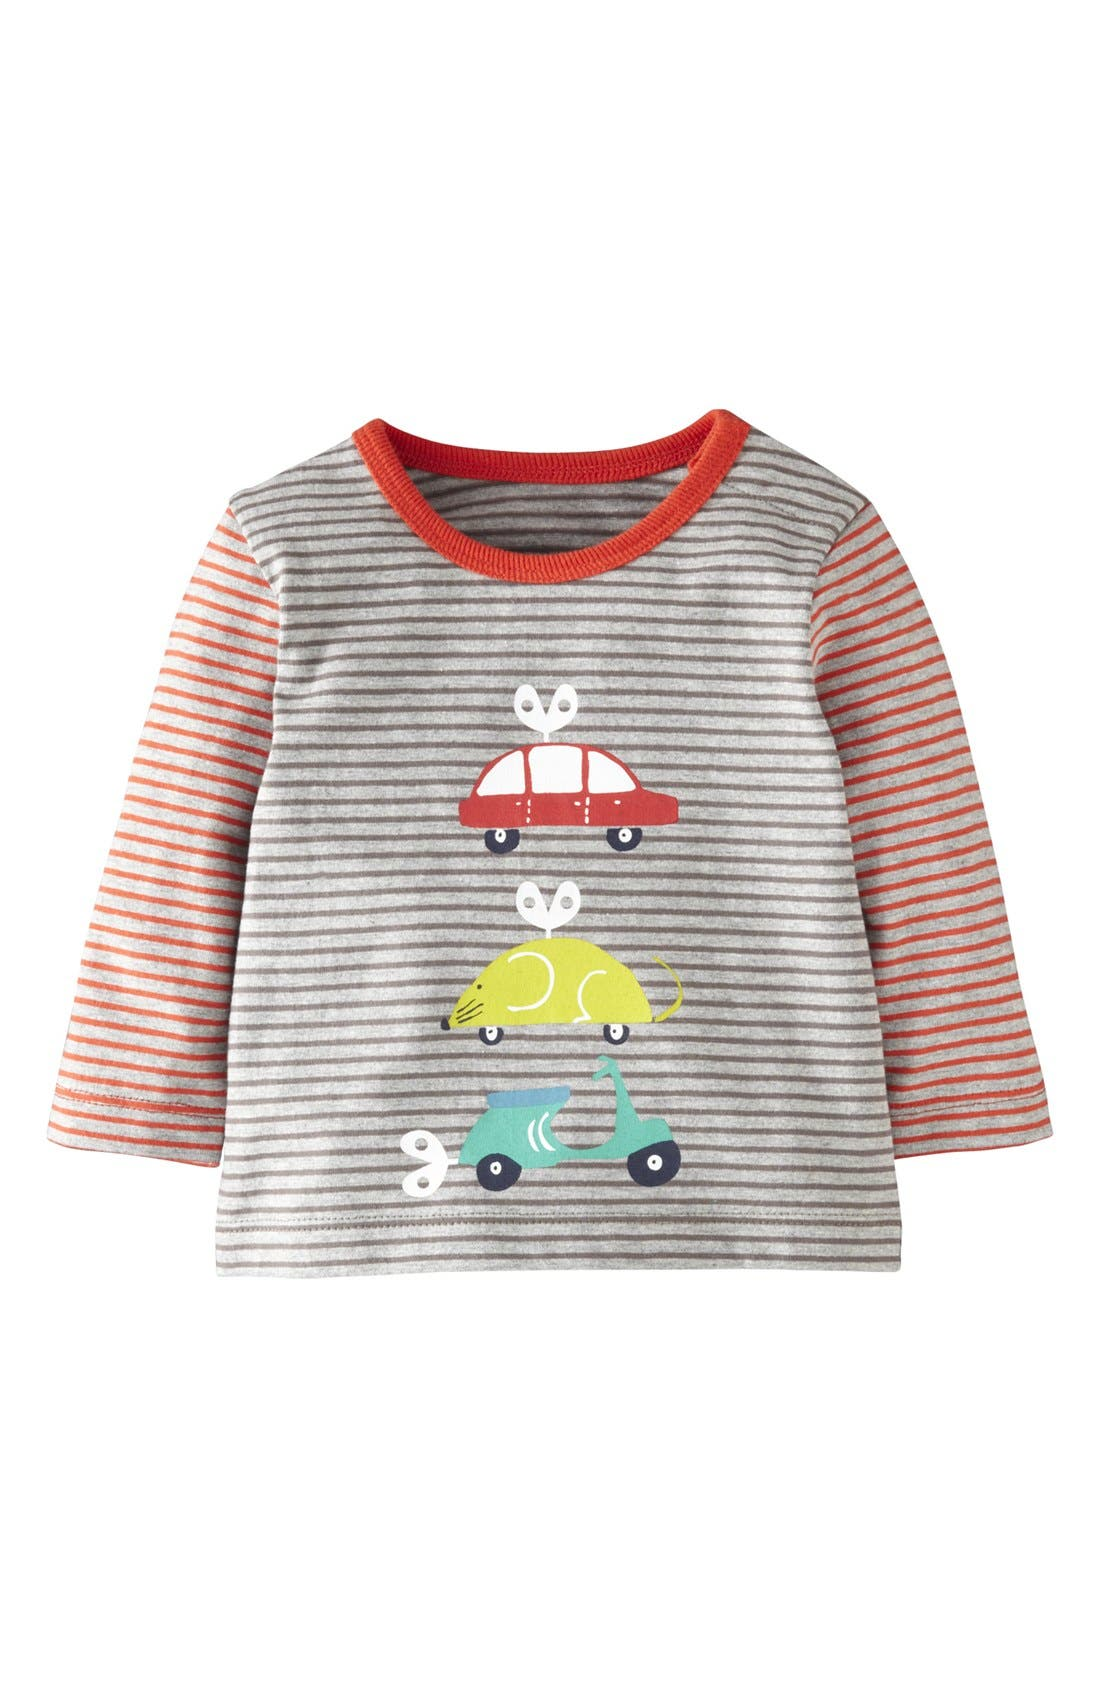 Alternate Image 1 Selected - Mini Boden Stripe Long Sleeve T-Shirt (Baby Boys)